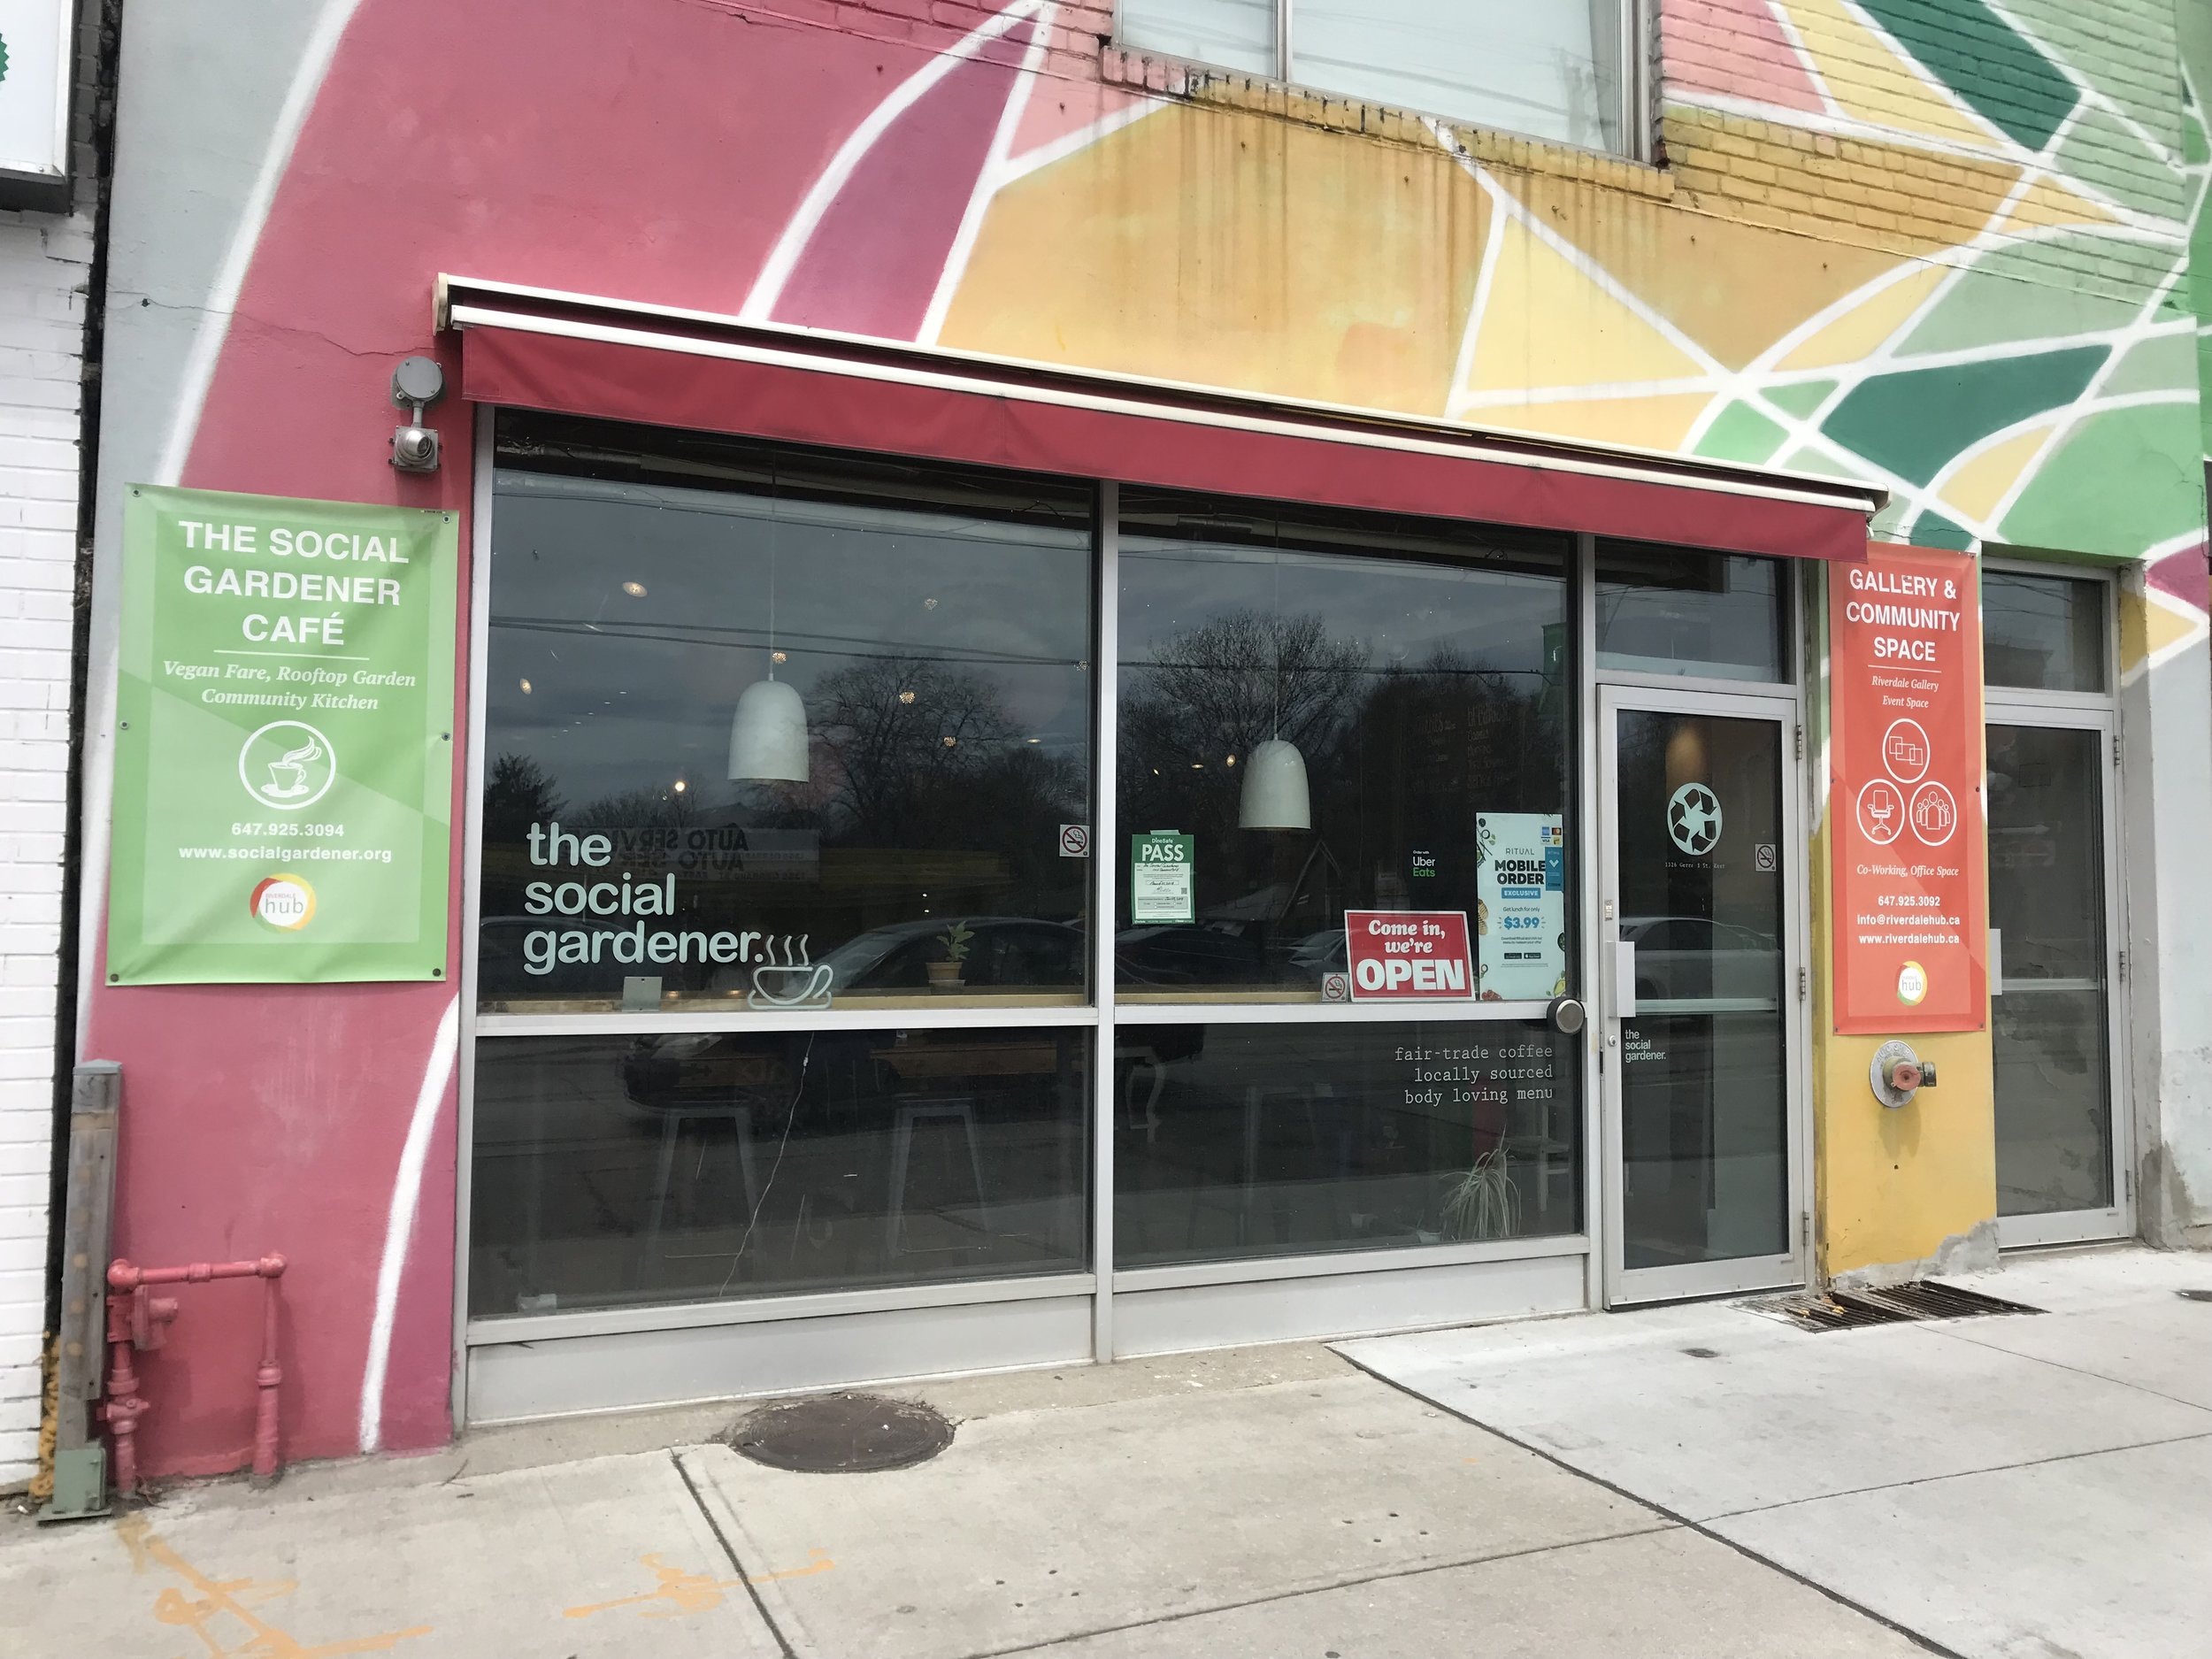 Picture of the accessible entrance of the social gardener cafe